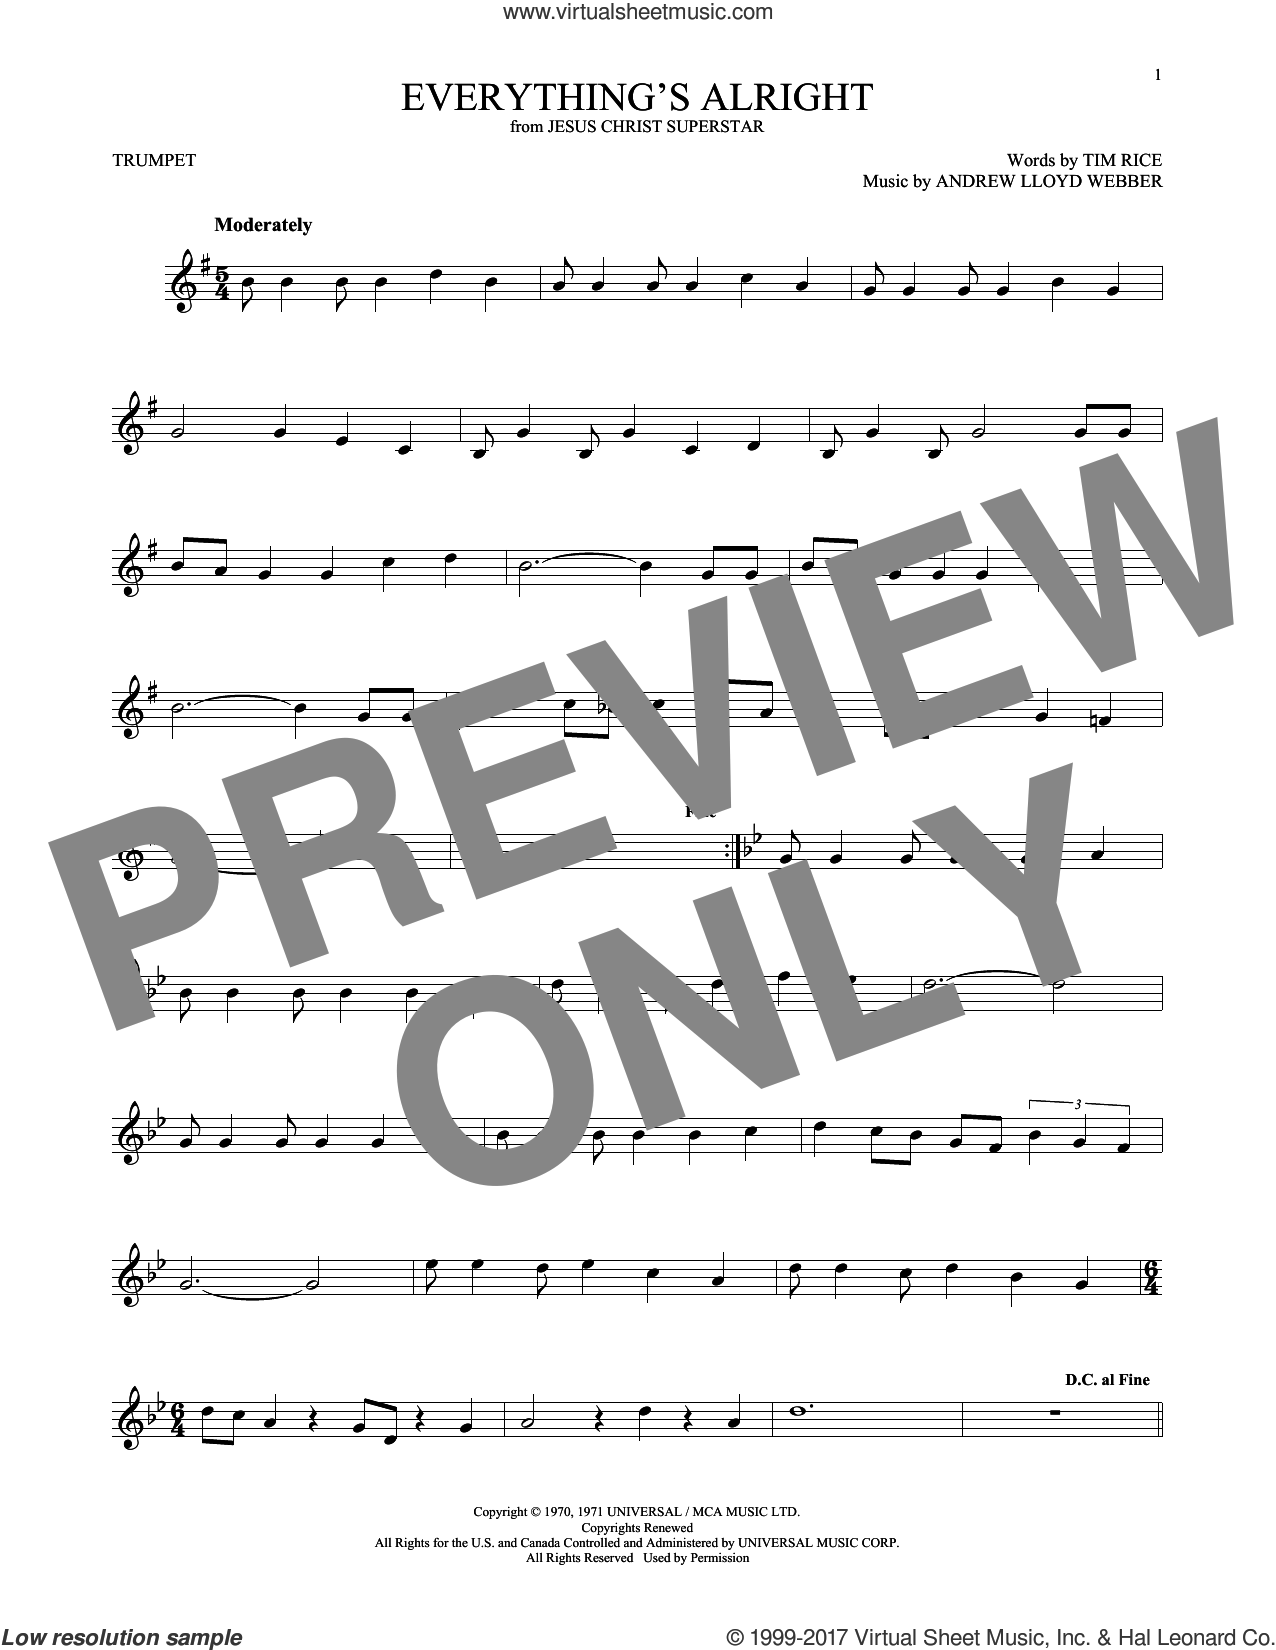 Everything's Alright sheet music for trumpet solo by Andrew Lloyd Webber, Yvonne Elliman and Tim Rice, intermediate skill level